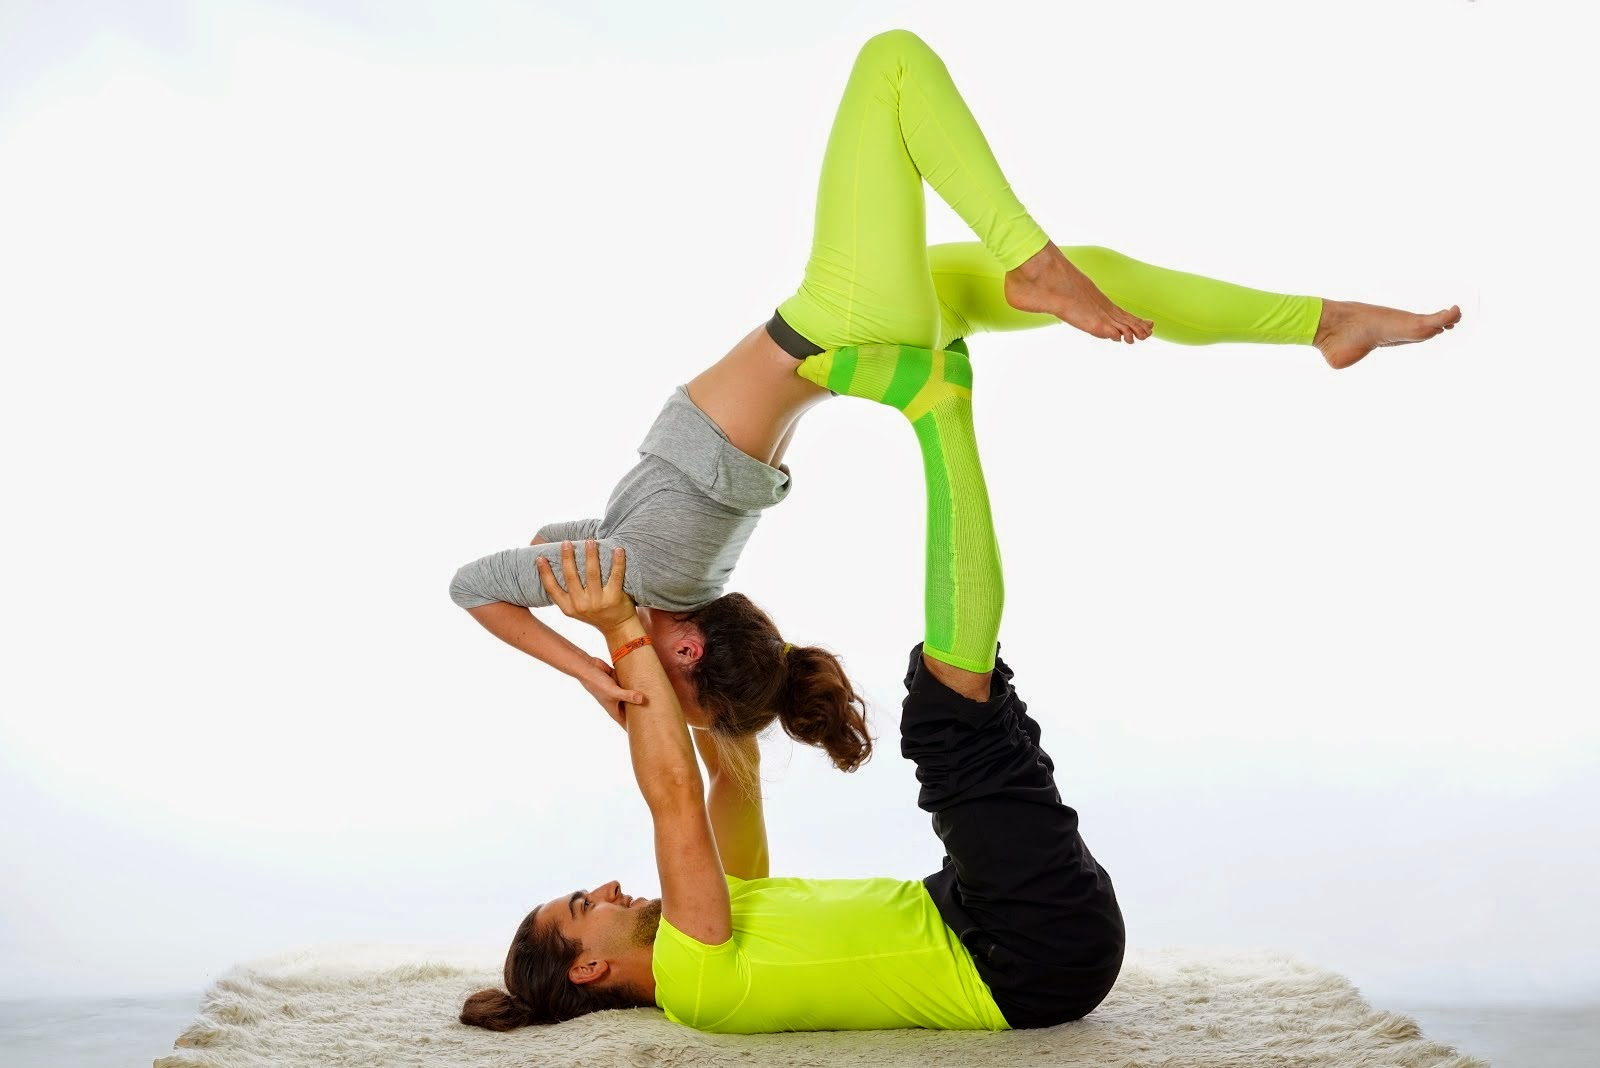 AcroYoga LT YouTube channel 1